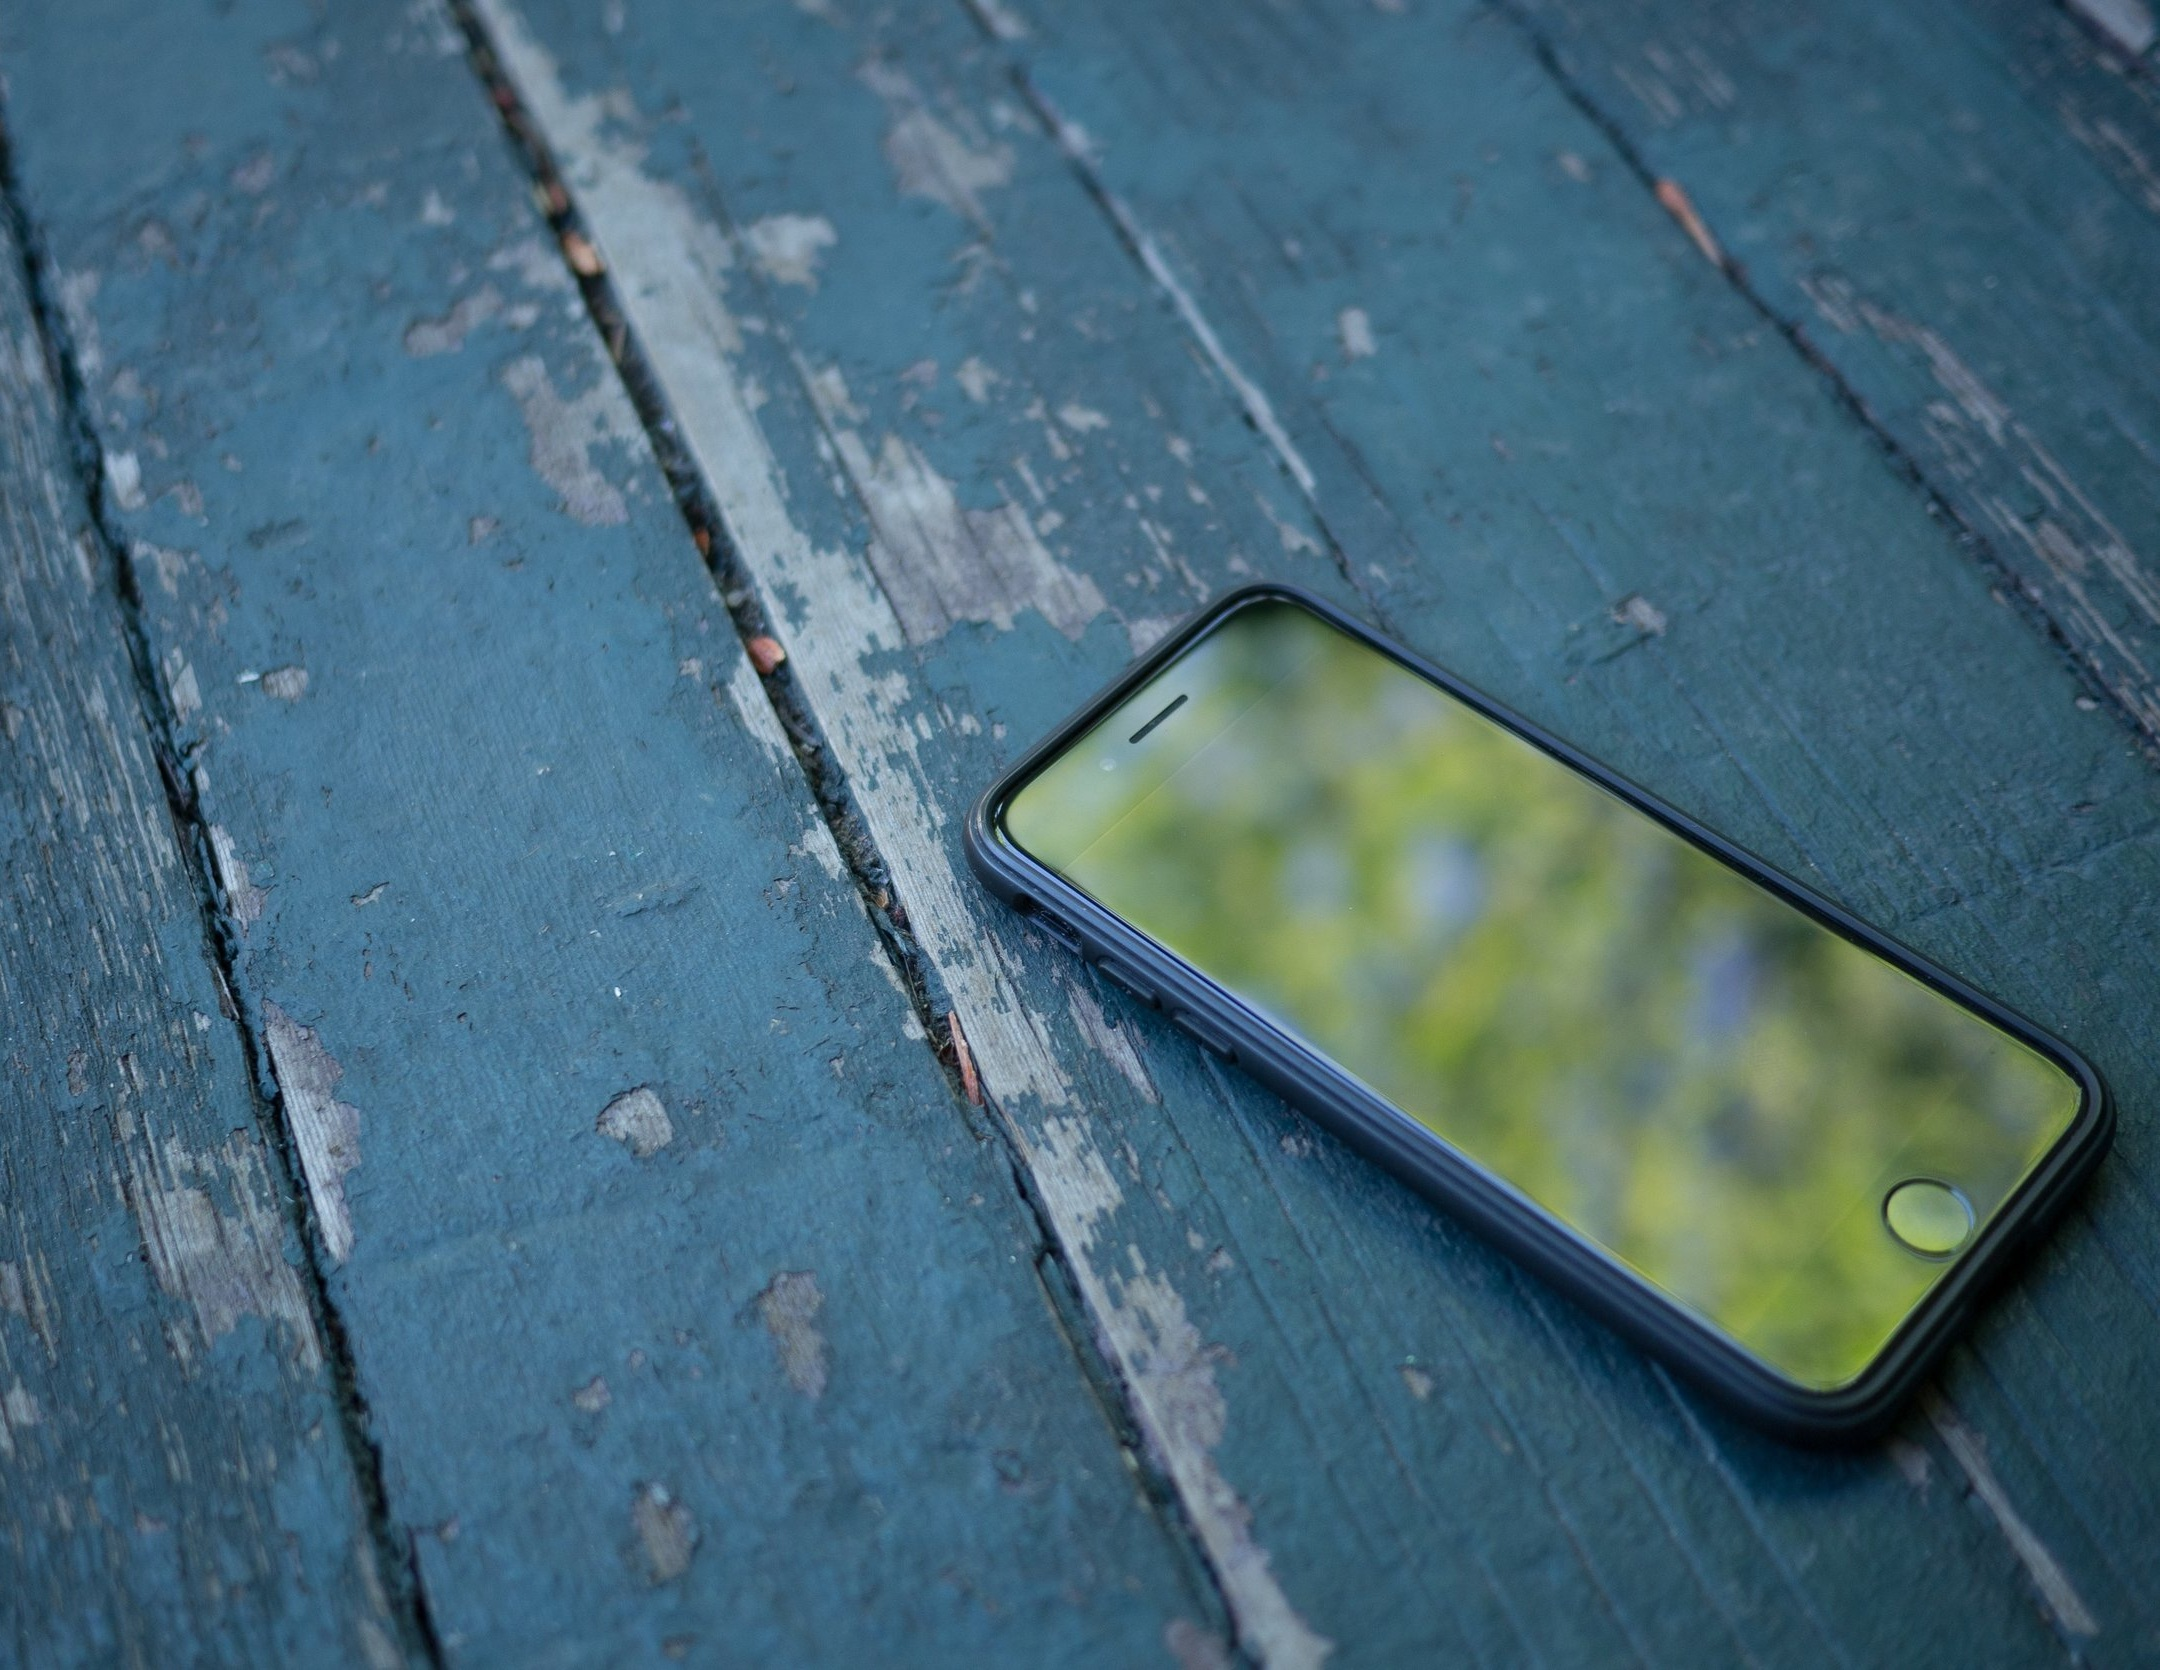 iPhone on a blue wooden floor